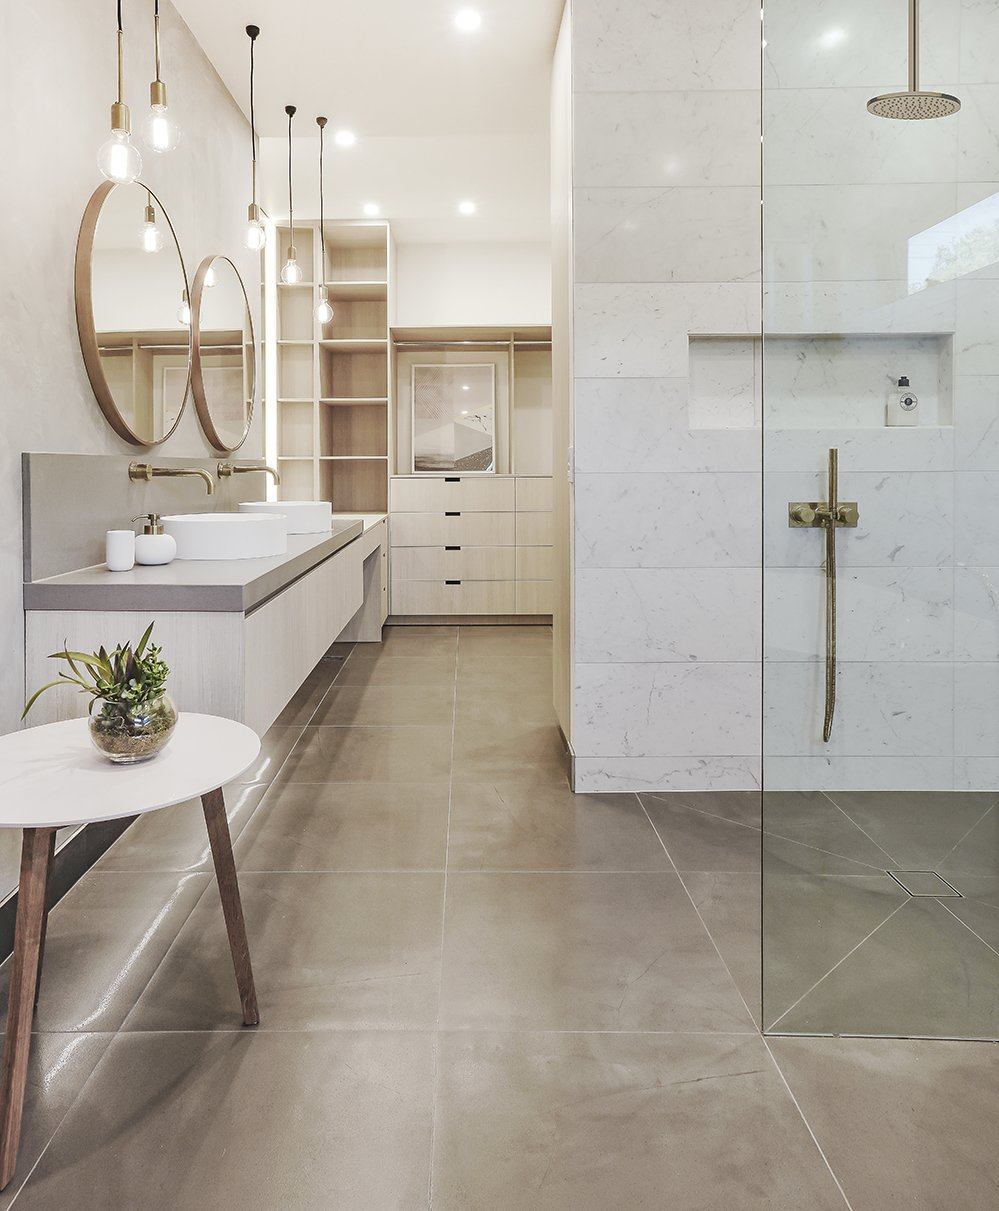 Bath Room, Enclosed Shower, Porcelain Tile Floor, Engineered Quartz Counter, Vessel Sink, and Pendant Lighting  Photo 5 of 8 in 6 Insider Tips For Bathroom Design From the Experts